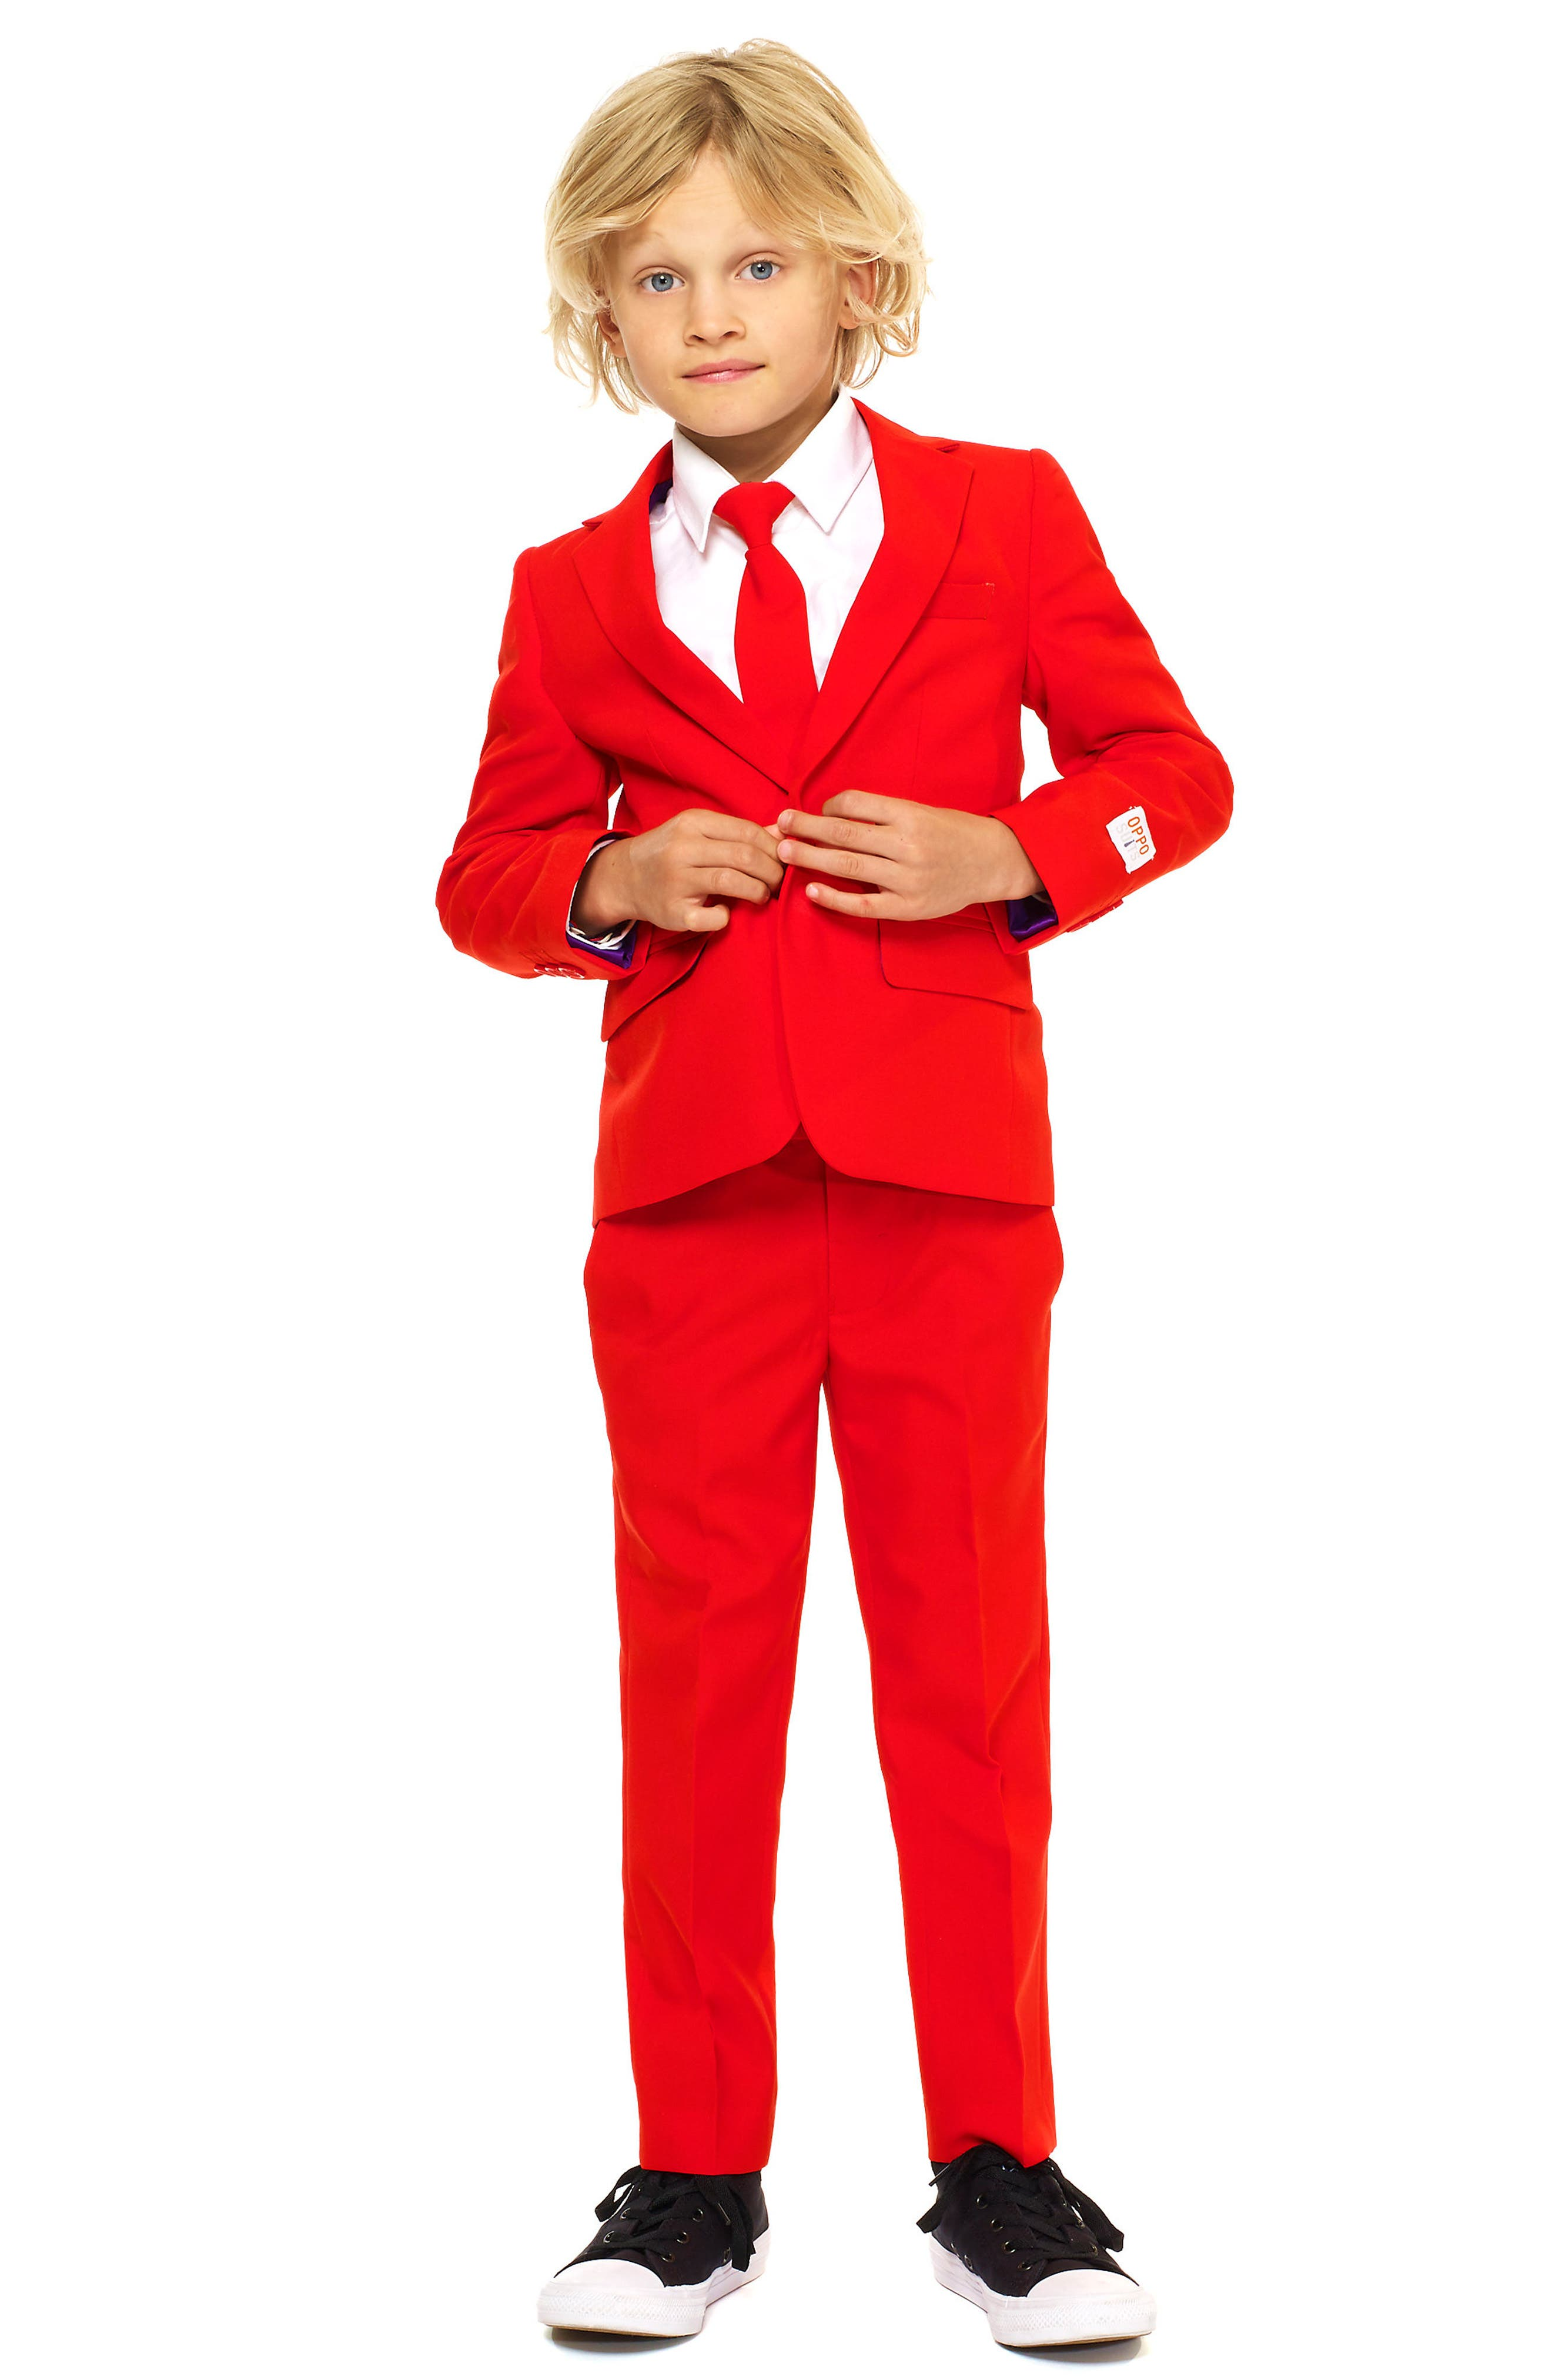 Oppo Red Devil Two-Piece Suit with Tie,                             Alternate thumbnail 3, color,                             Red